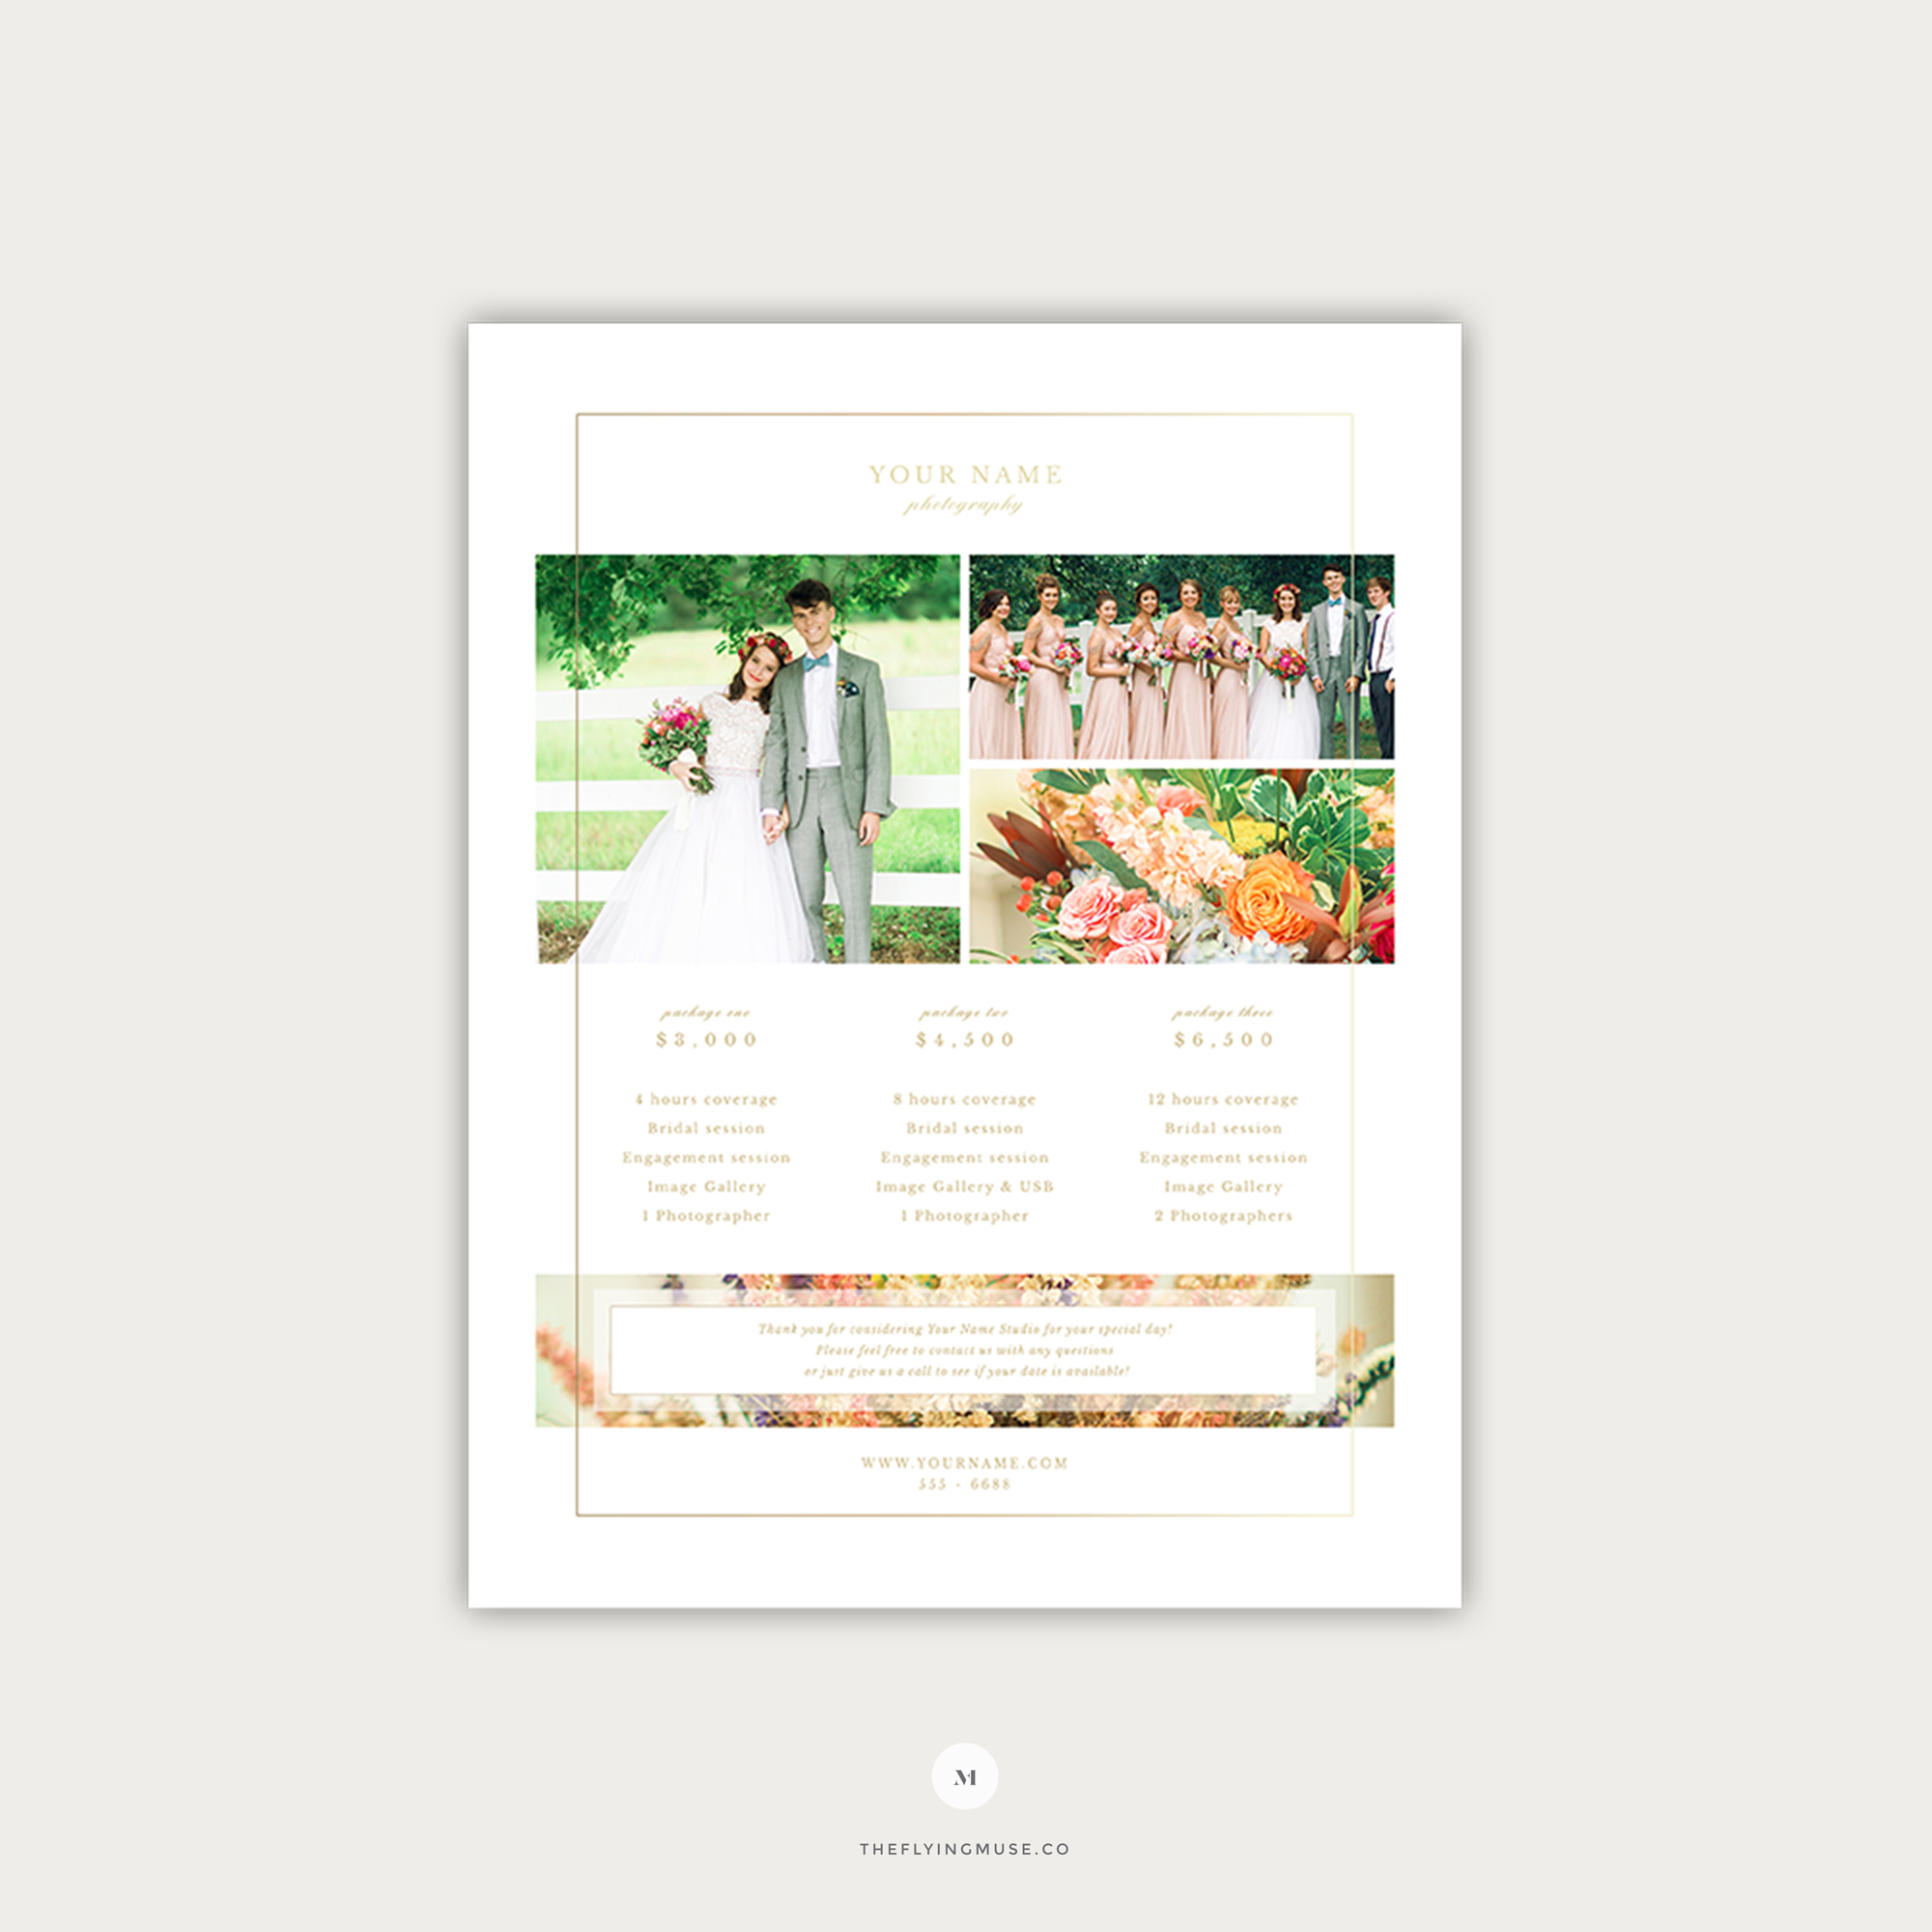 Wedding Photography Pricing Template - the Flying Muse